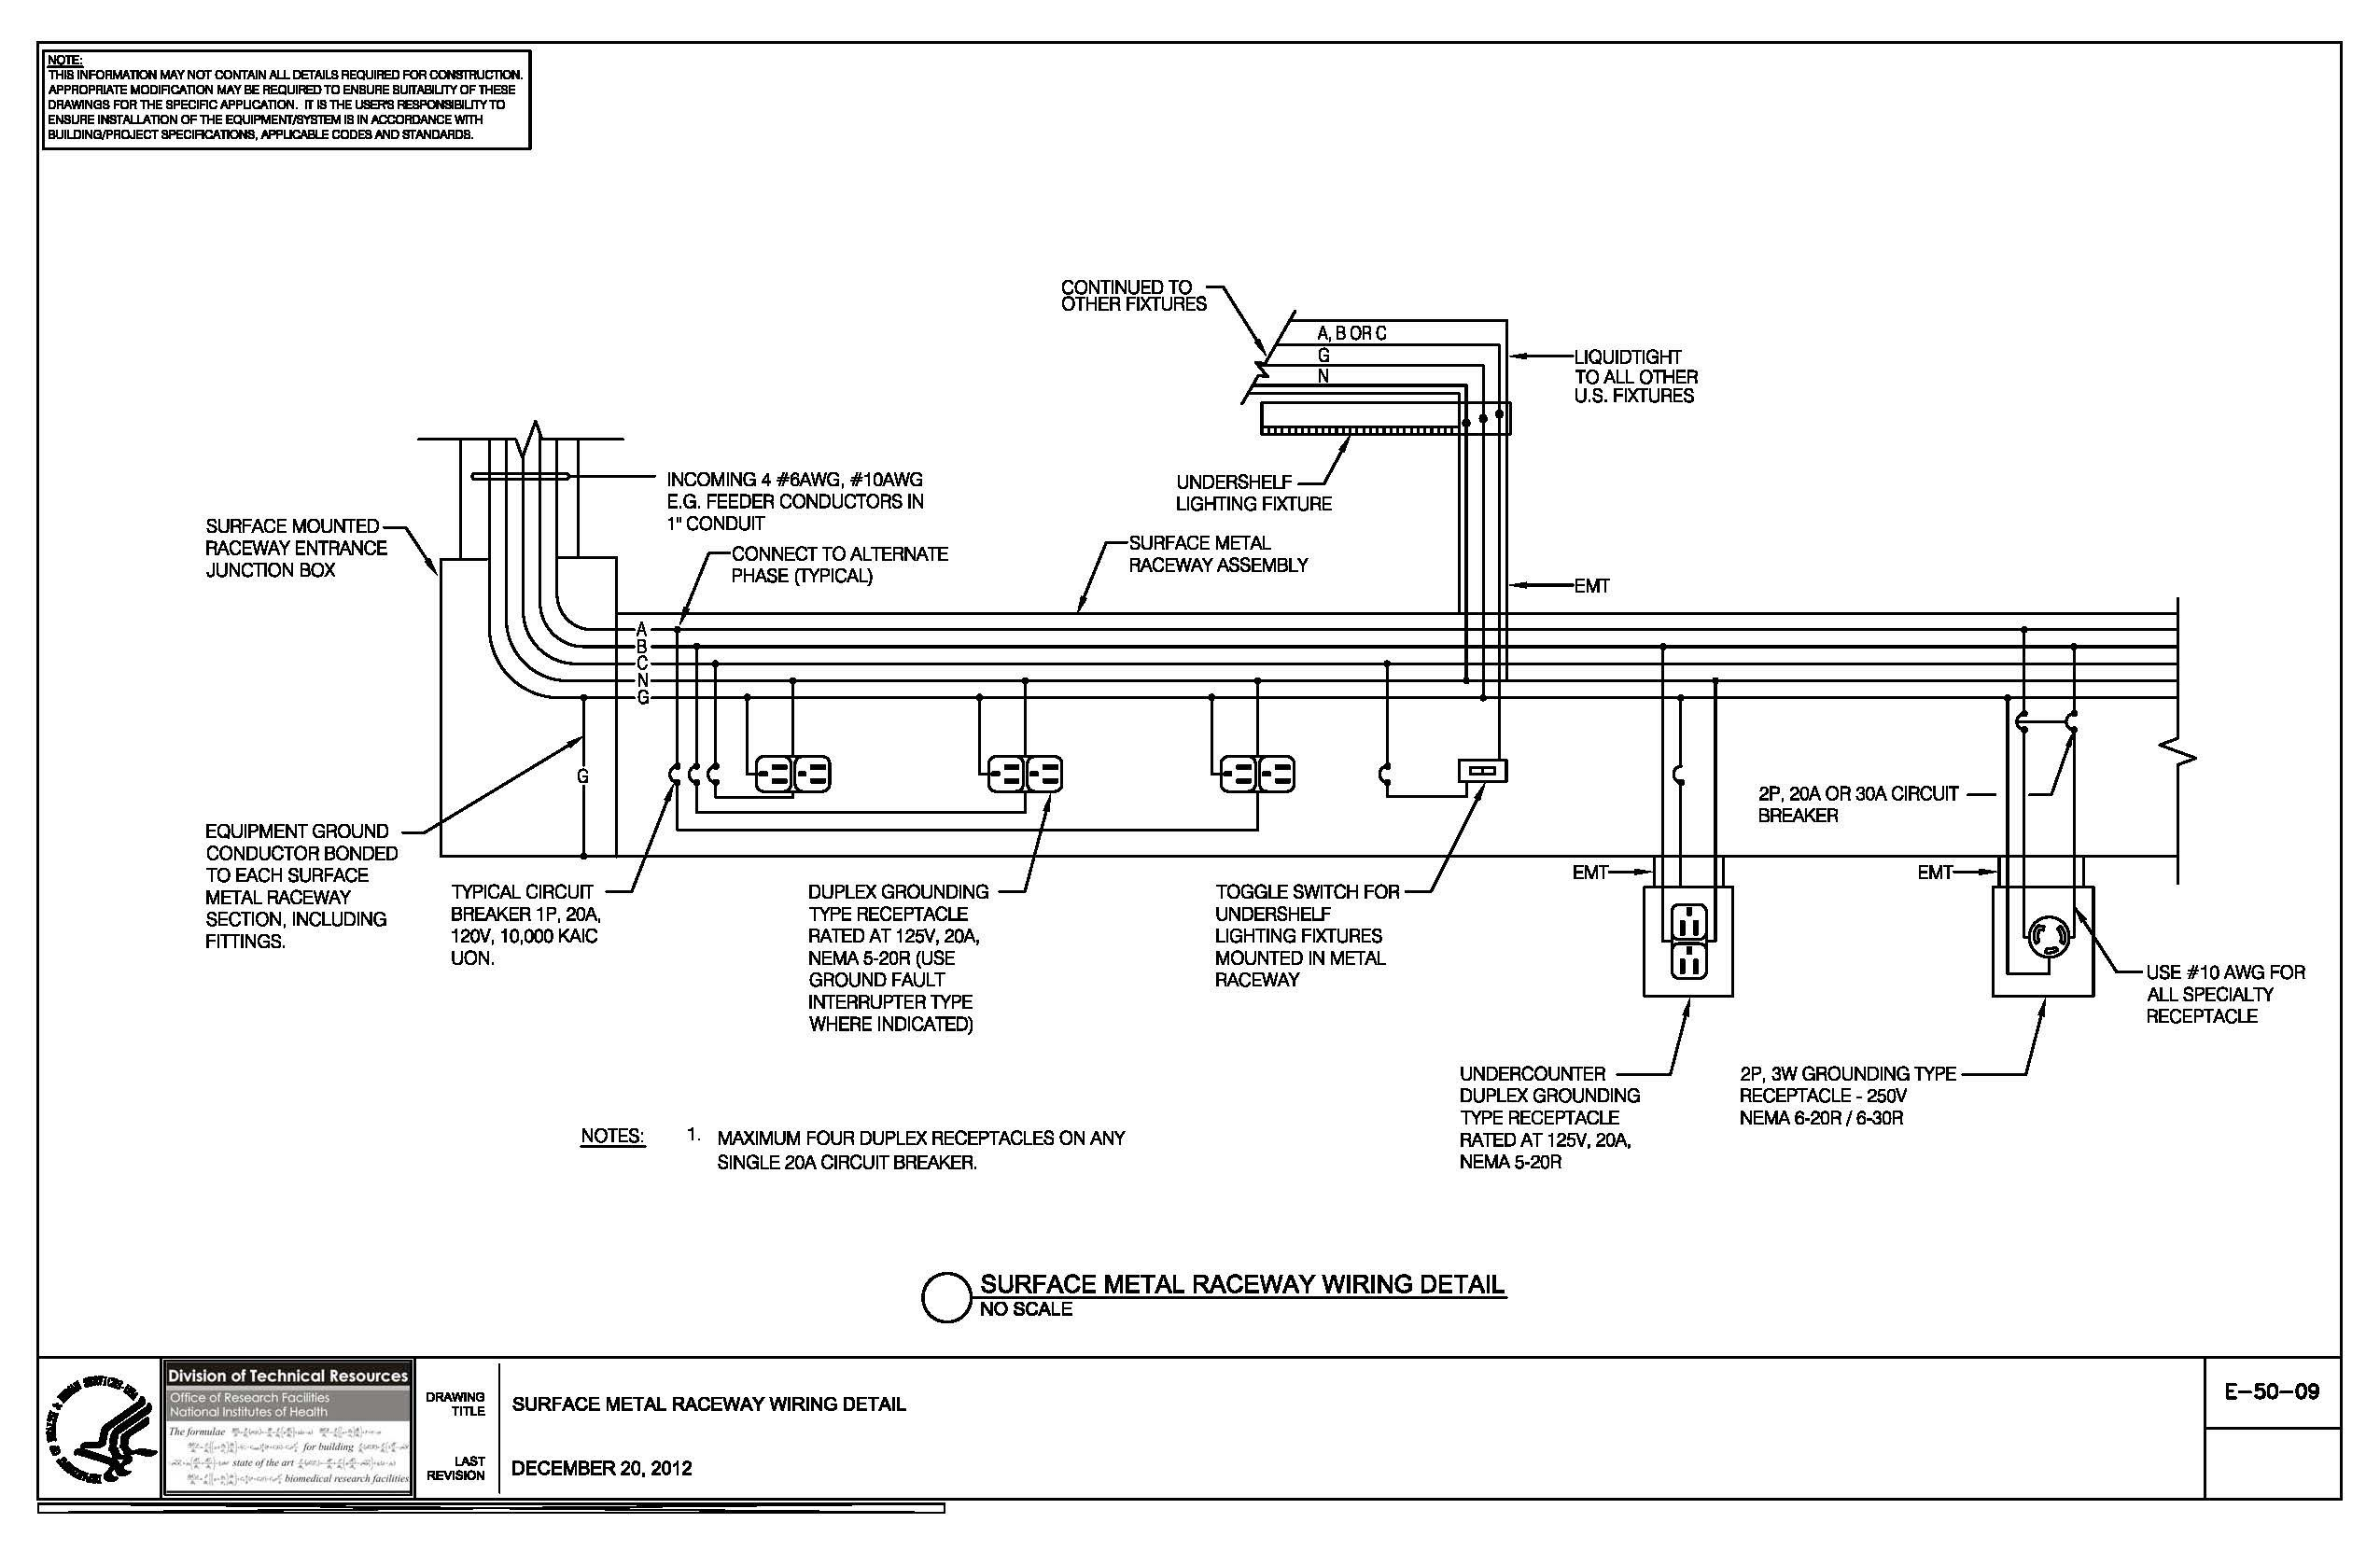 Ground Pool Electrical Wiring Diagram Unique Nih Standard Cad Details